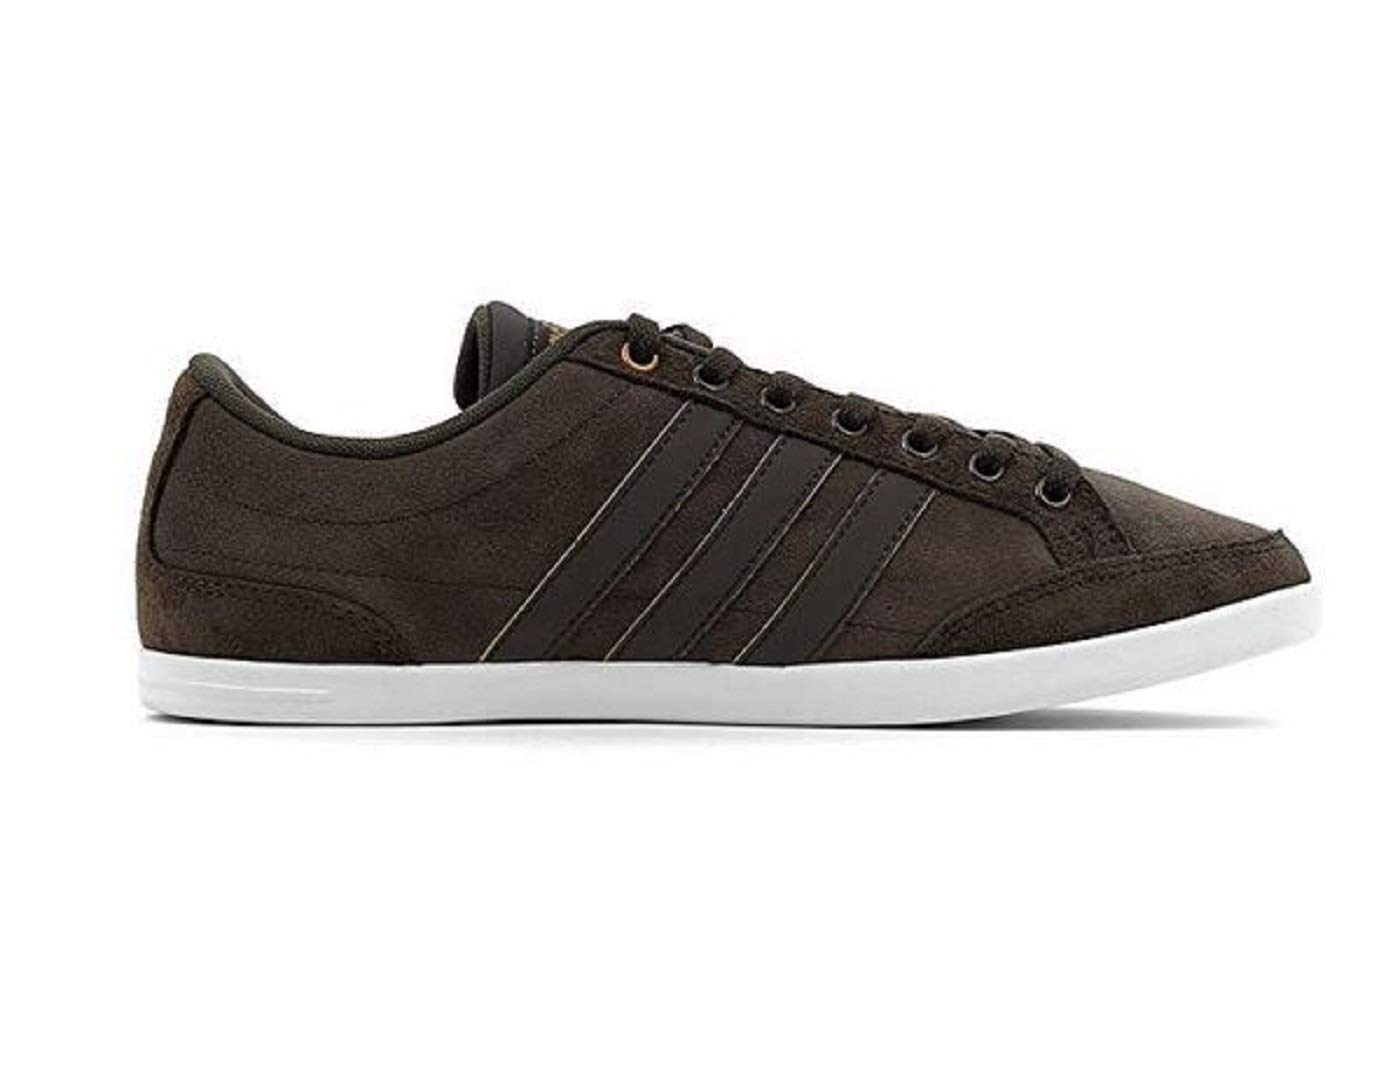 6706854f16f13 adidas Scarpe Uomo Sneakers CAFLAIRE in camoscio Marrone BB9706  Amazon.co. uk  Shoes   Bags